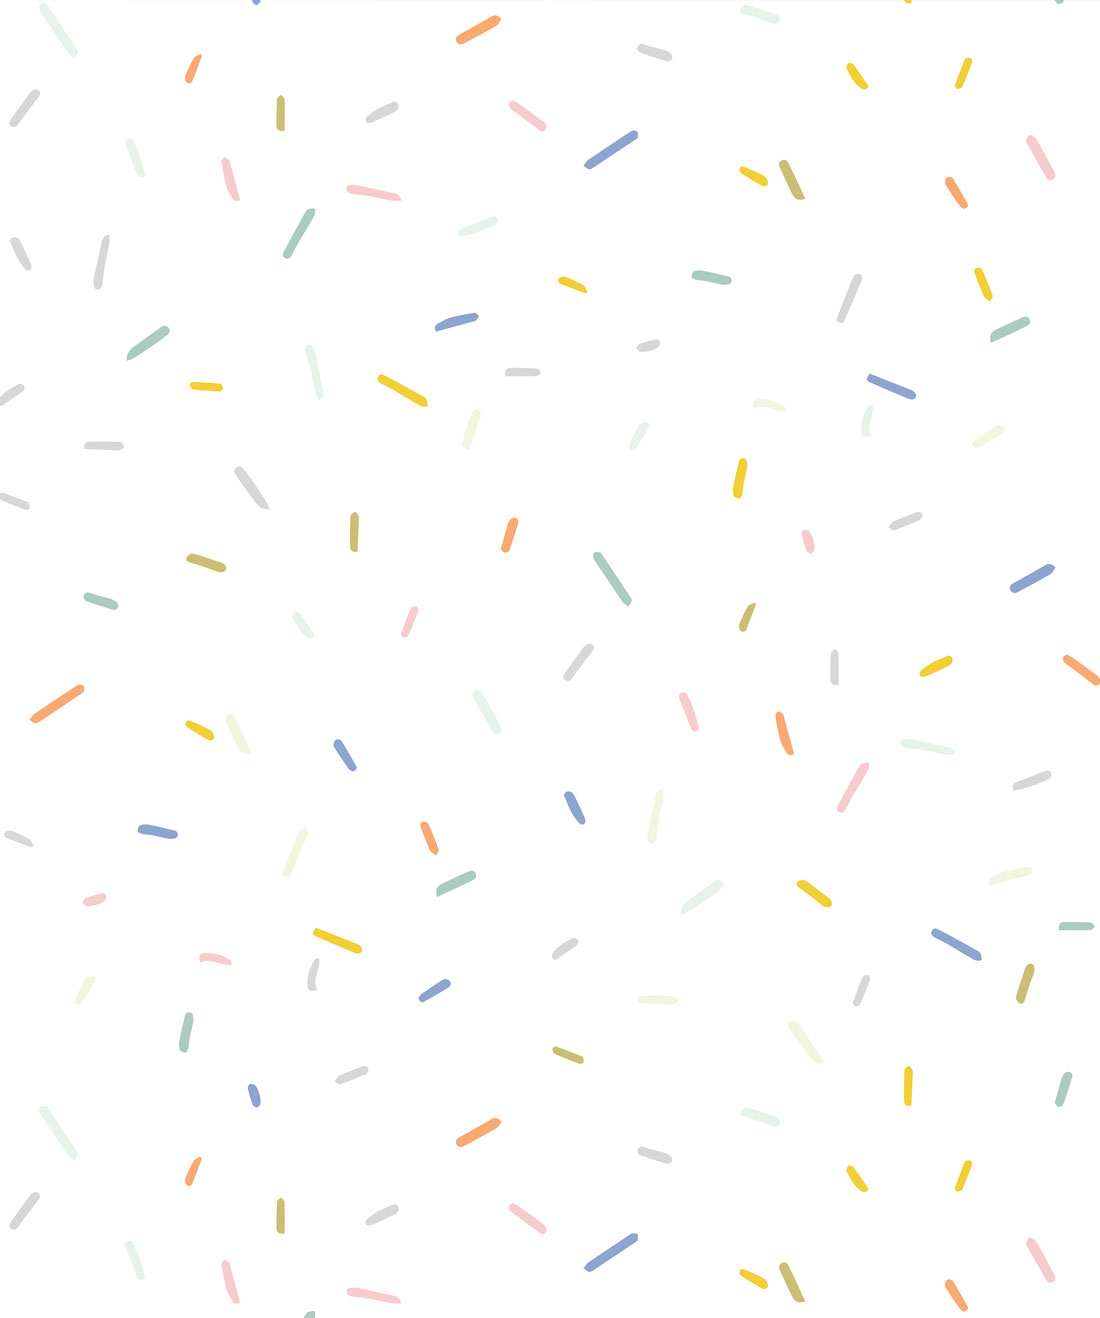 Confetti Wallpaper (MM)